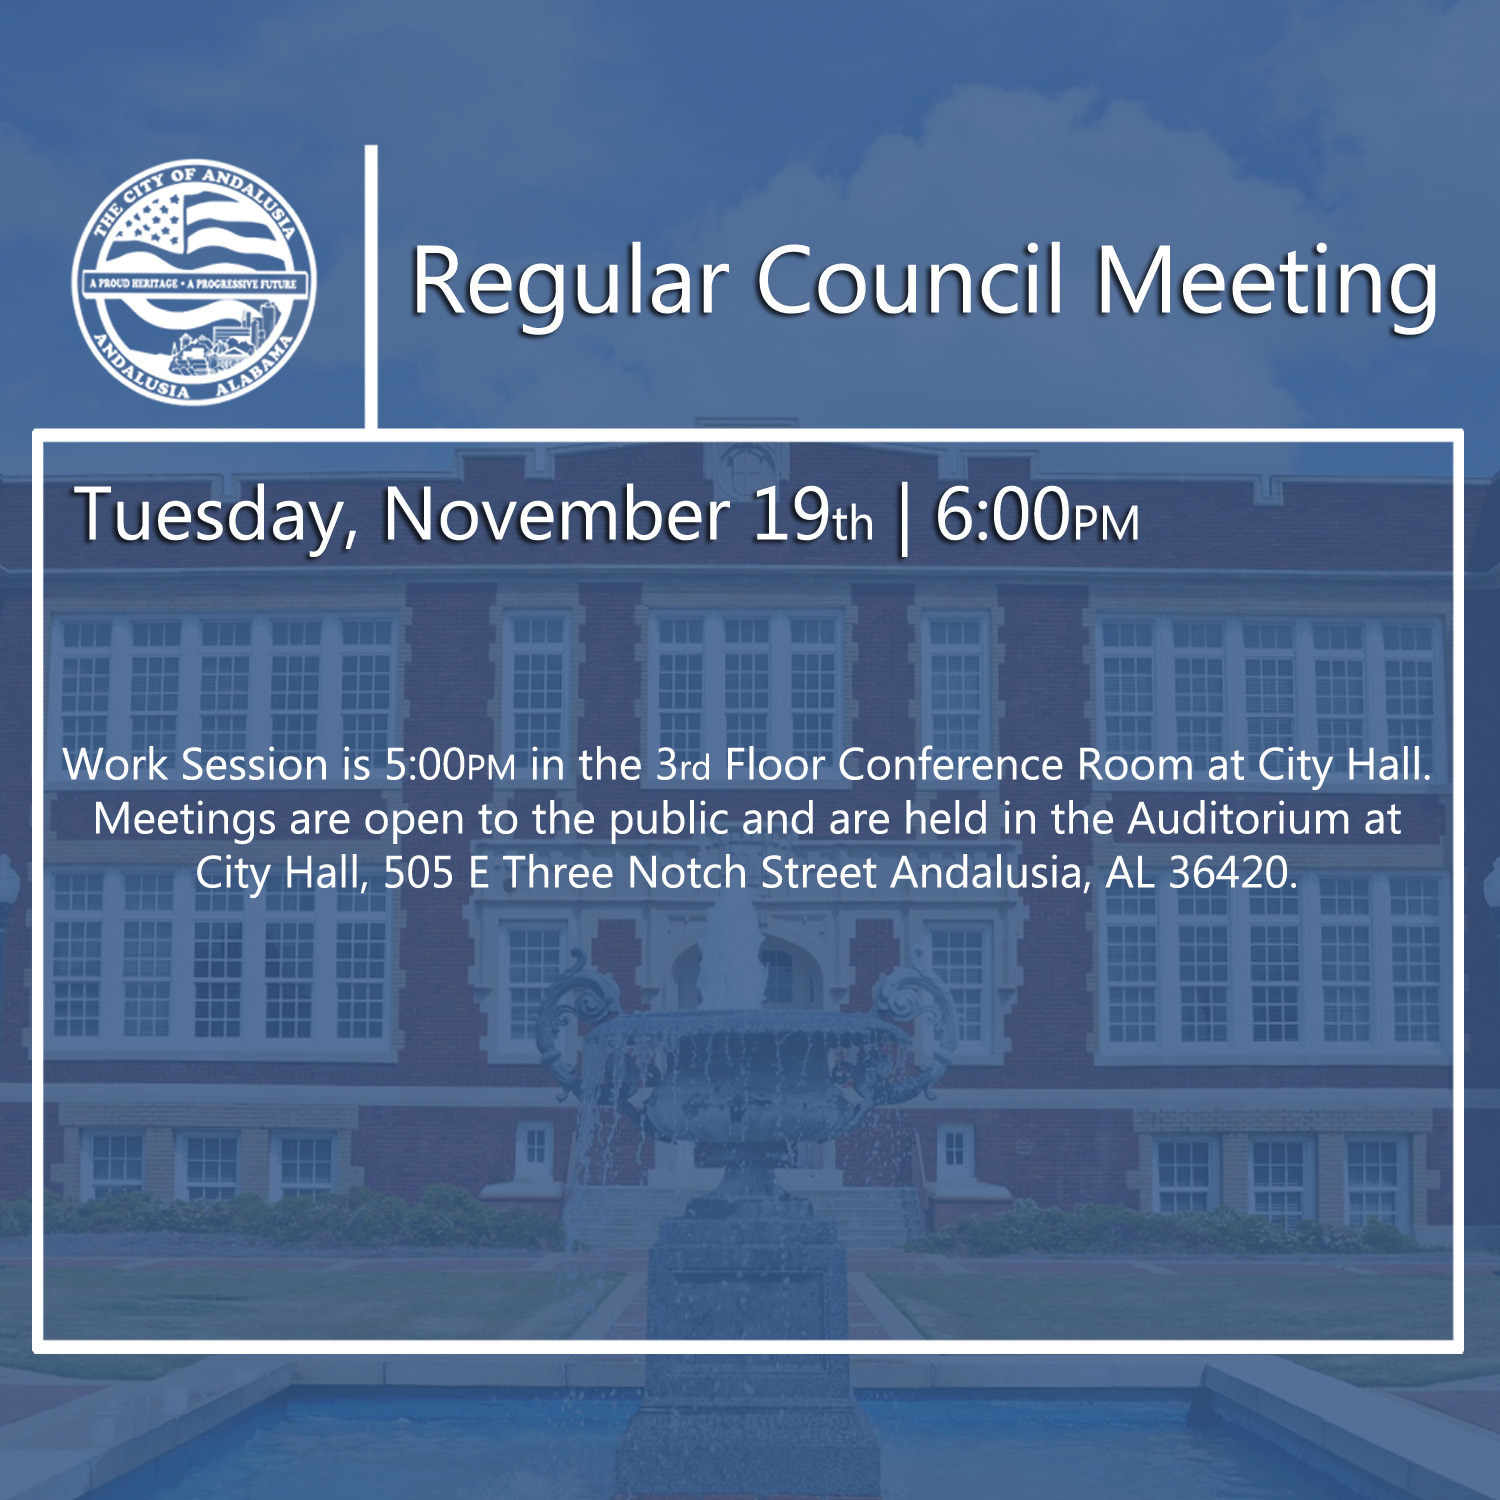 Website Regular Council Meeting November 19